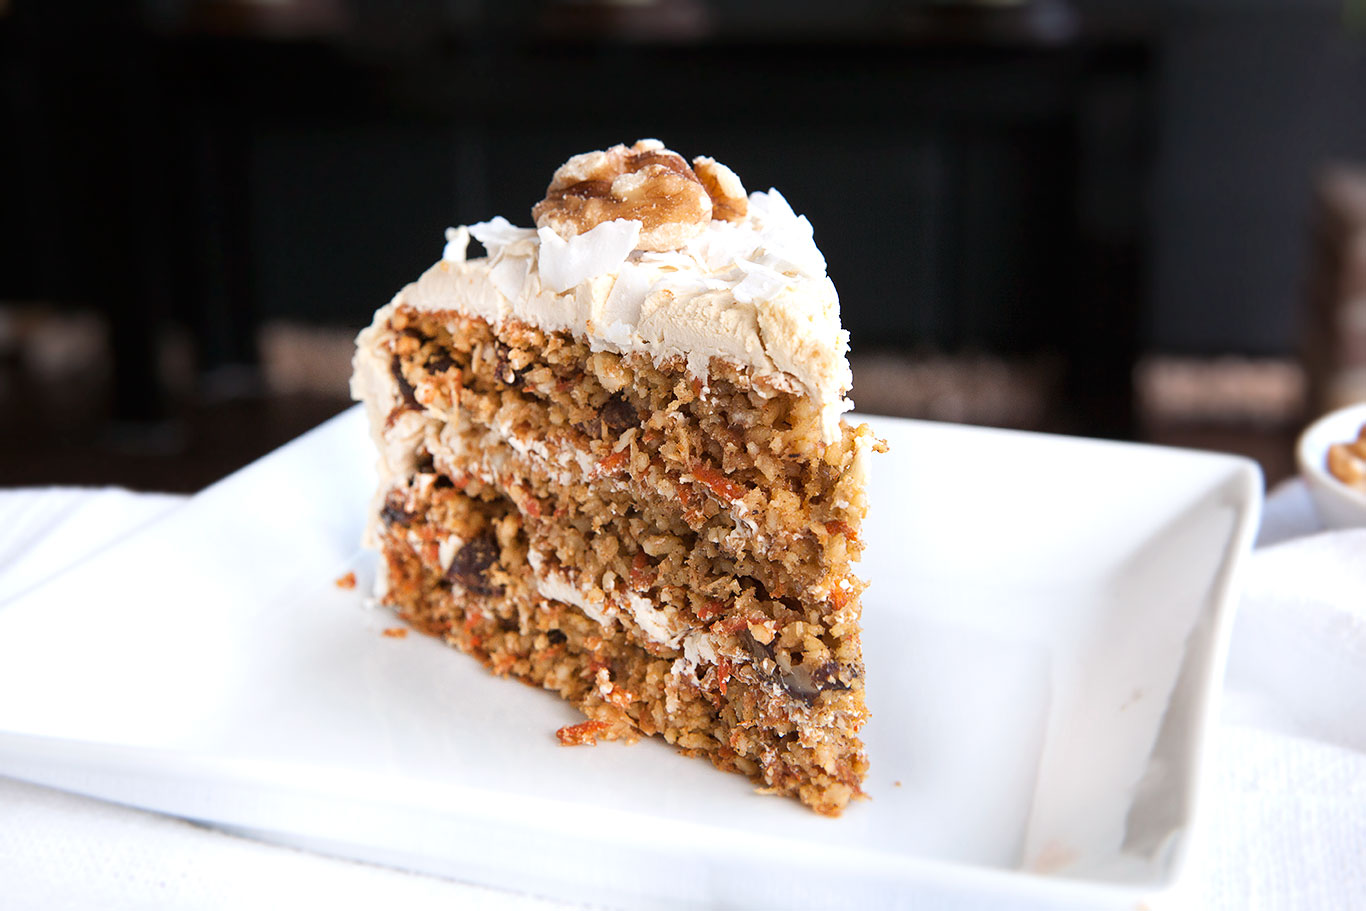 Yummy Layered Cake Recipes: A Healthy And Delicious Recipe